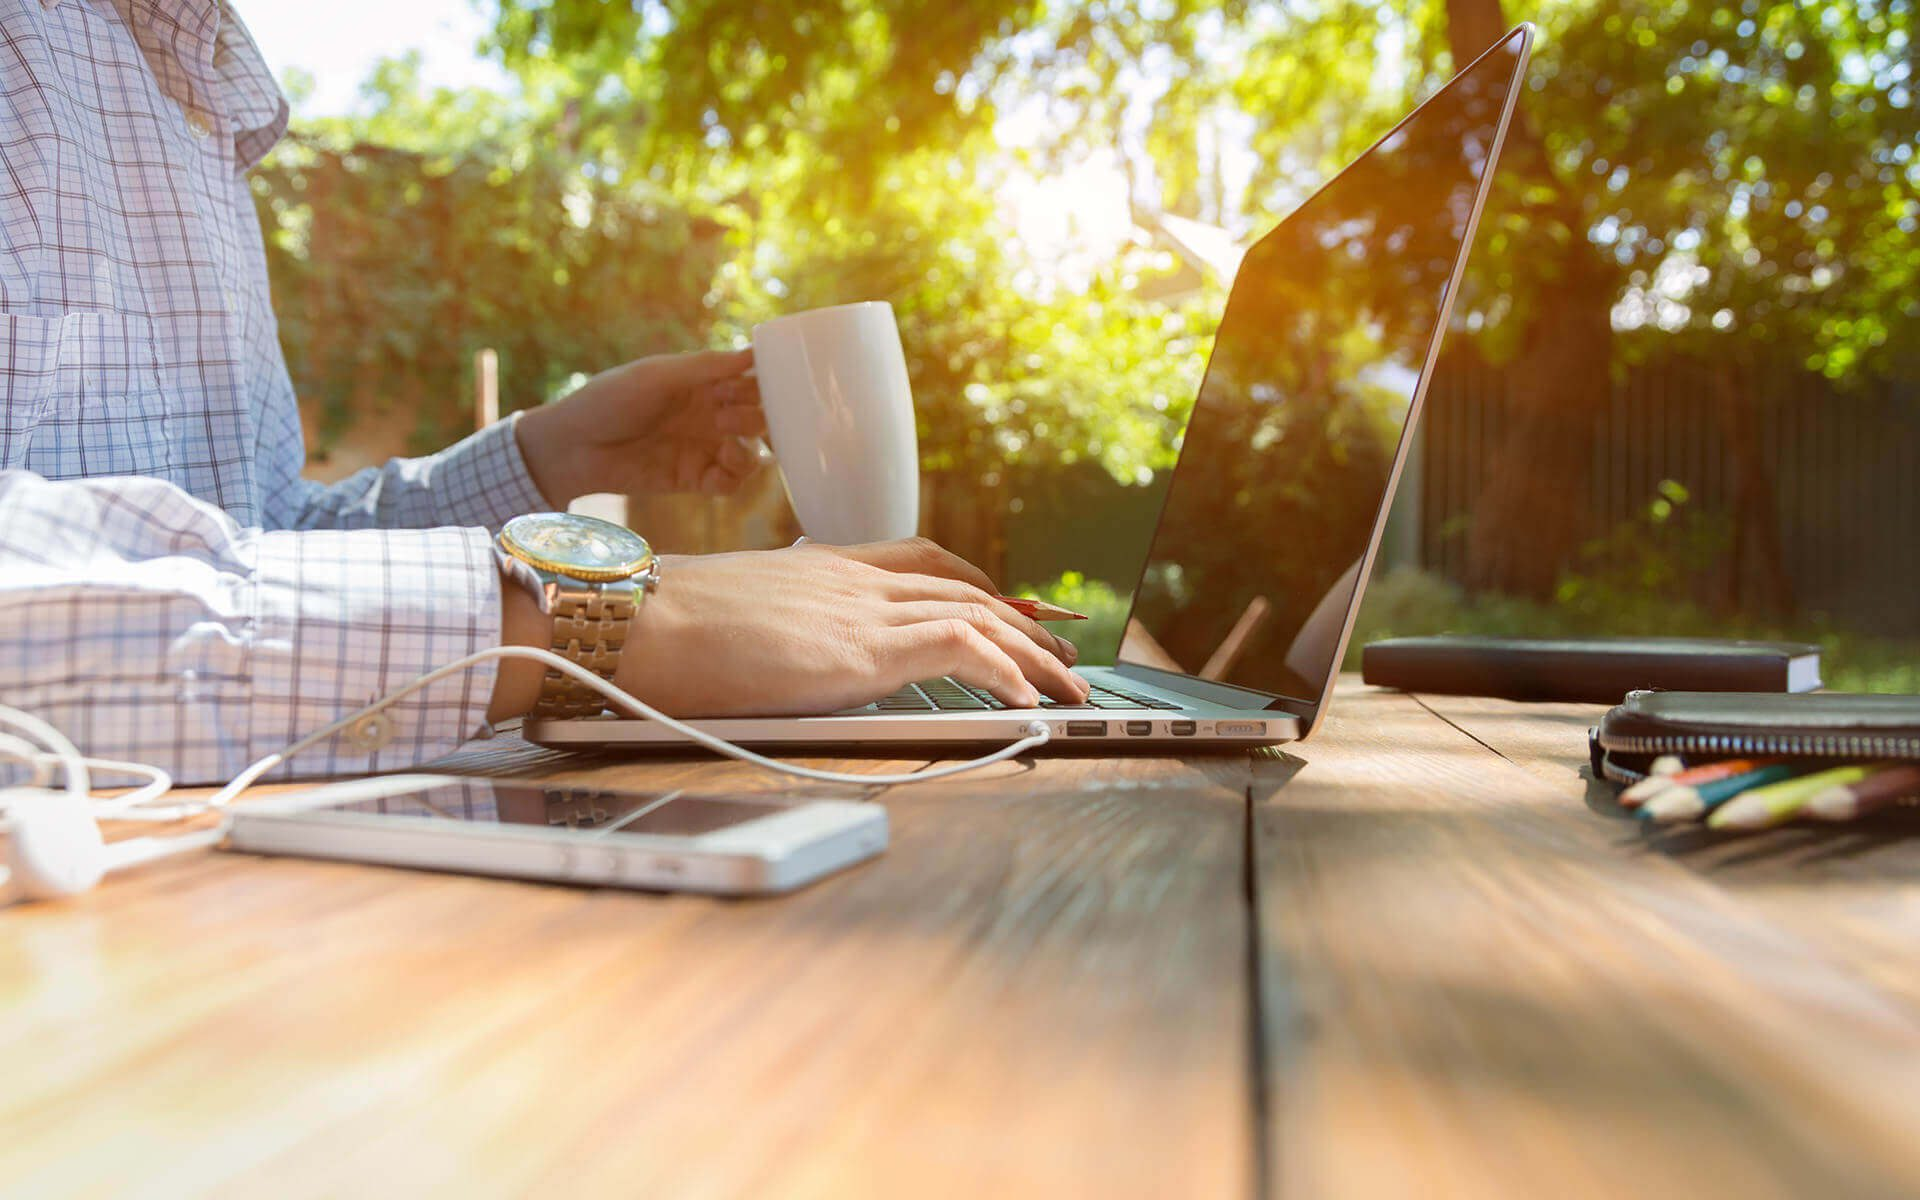 84 percent of businesses have a remote workforce